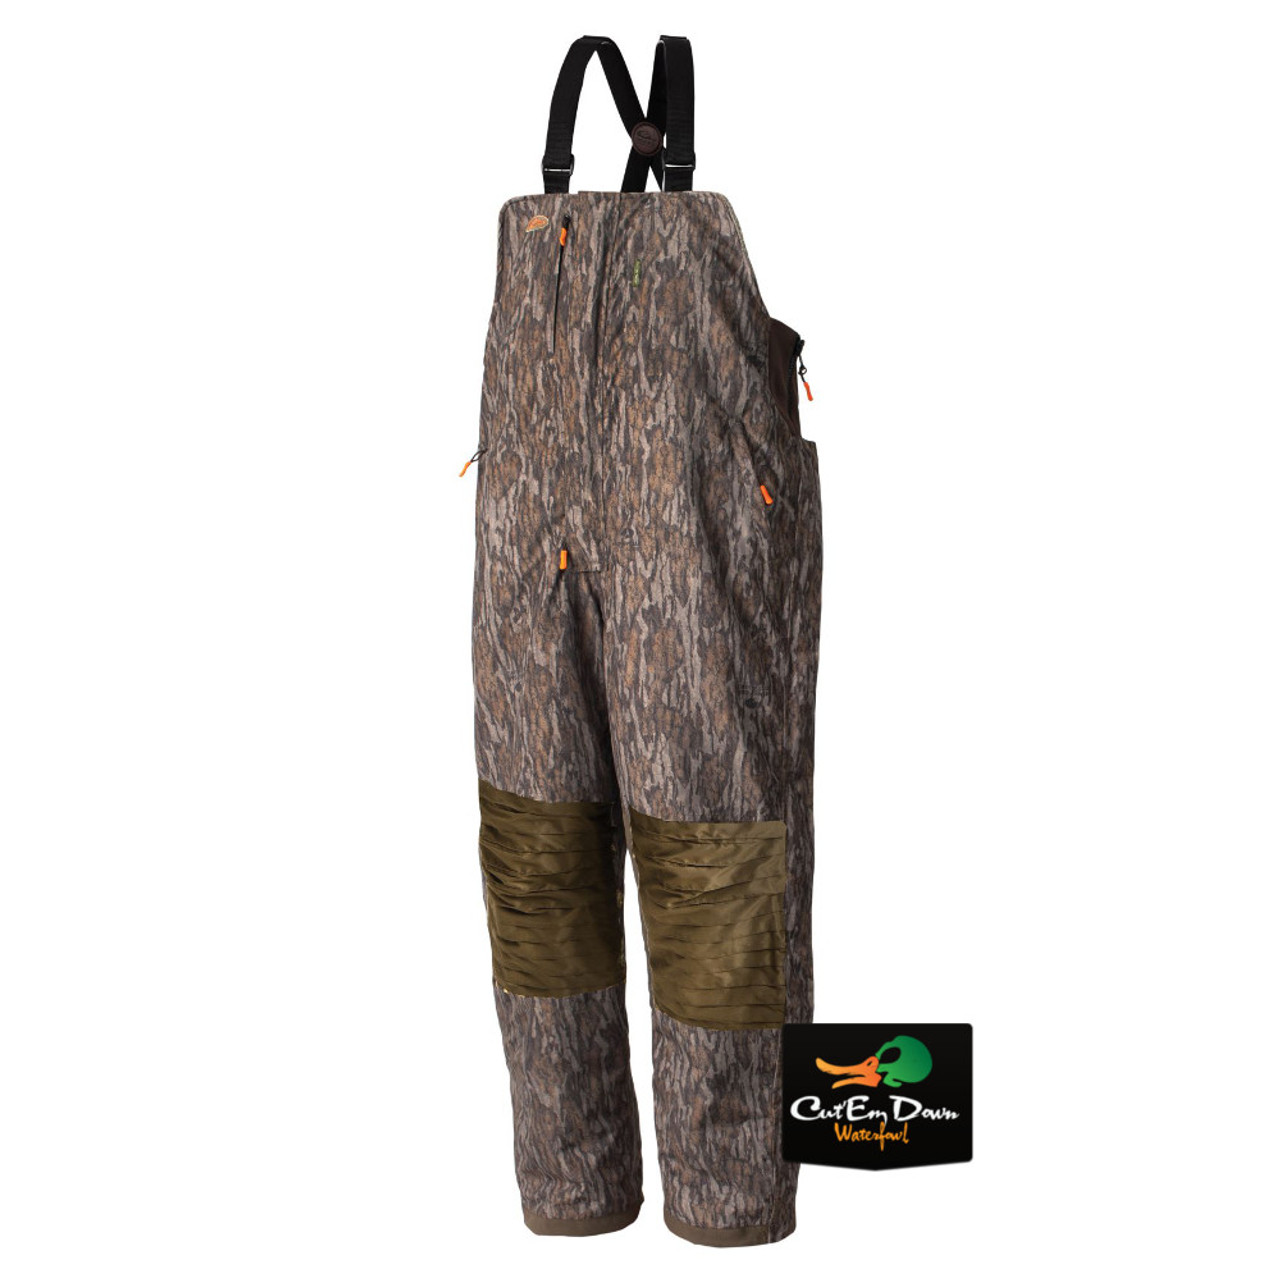 86e4f780c4d14 Mossy Oak Bottomland Camo · Mossy Oak Bottomland Camo · Realtree Xtra Camo  · DRAKE WATERFOWL NON-TYPICAL STORM BIBS WITH SHERPA FLEECE LINING ...